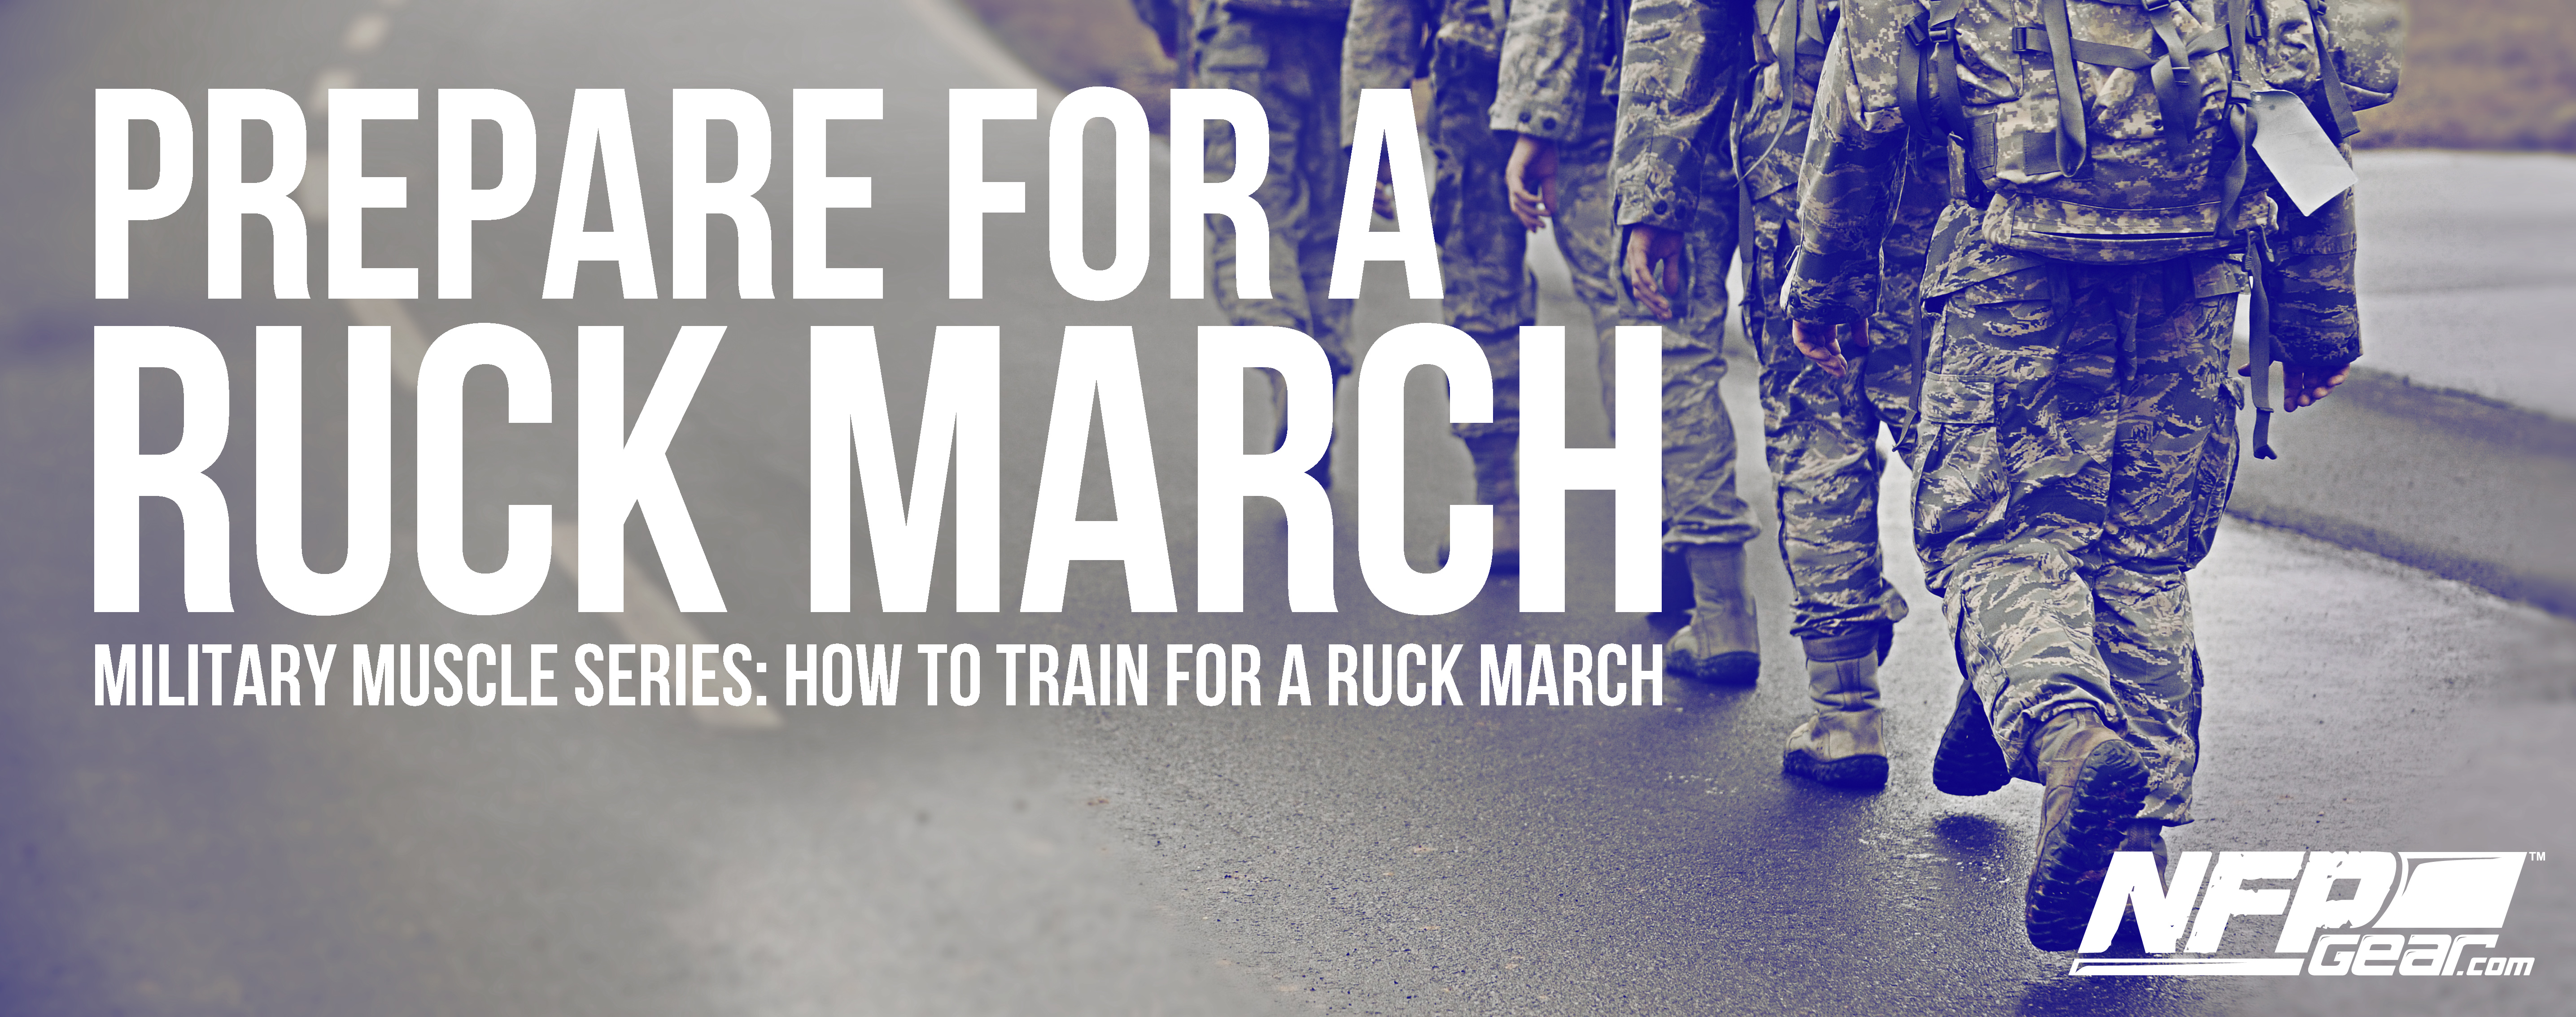 PREPARE FOR A RUCK MARCH - NFP Gear